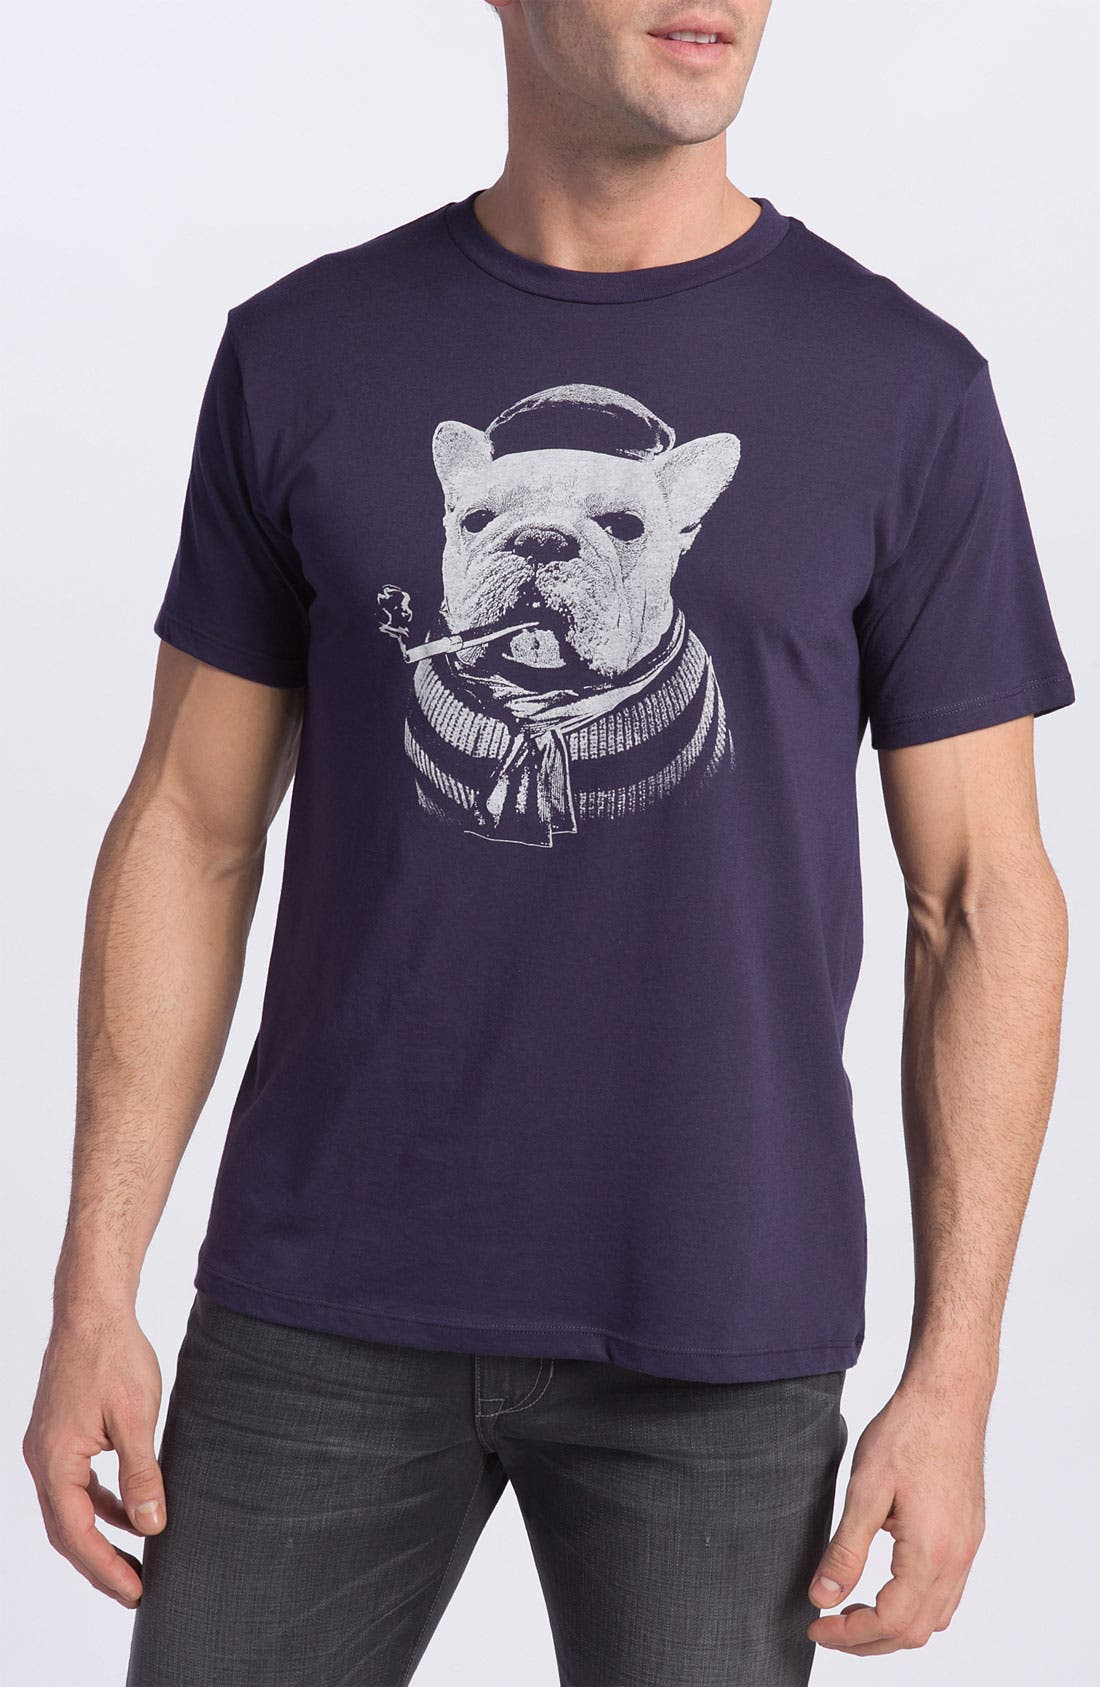 Alternate Image 1 Selected - Headline Shirts 'French Bulldog' T-Shirt